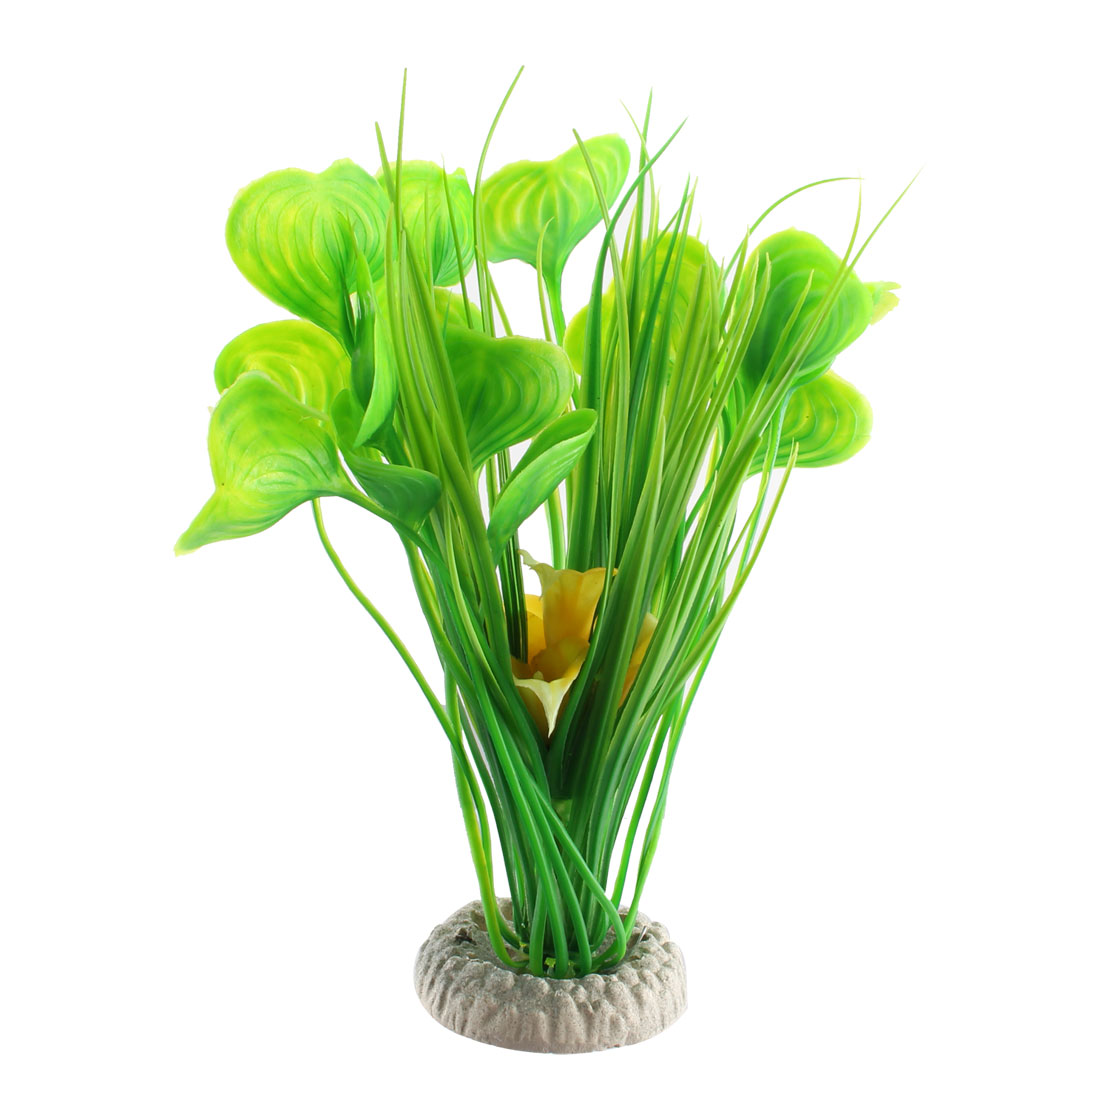 Lifelike Plants Aquarium Ceramic Base Artificial Lifelike Grass Plant